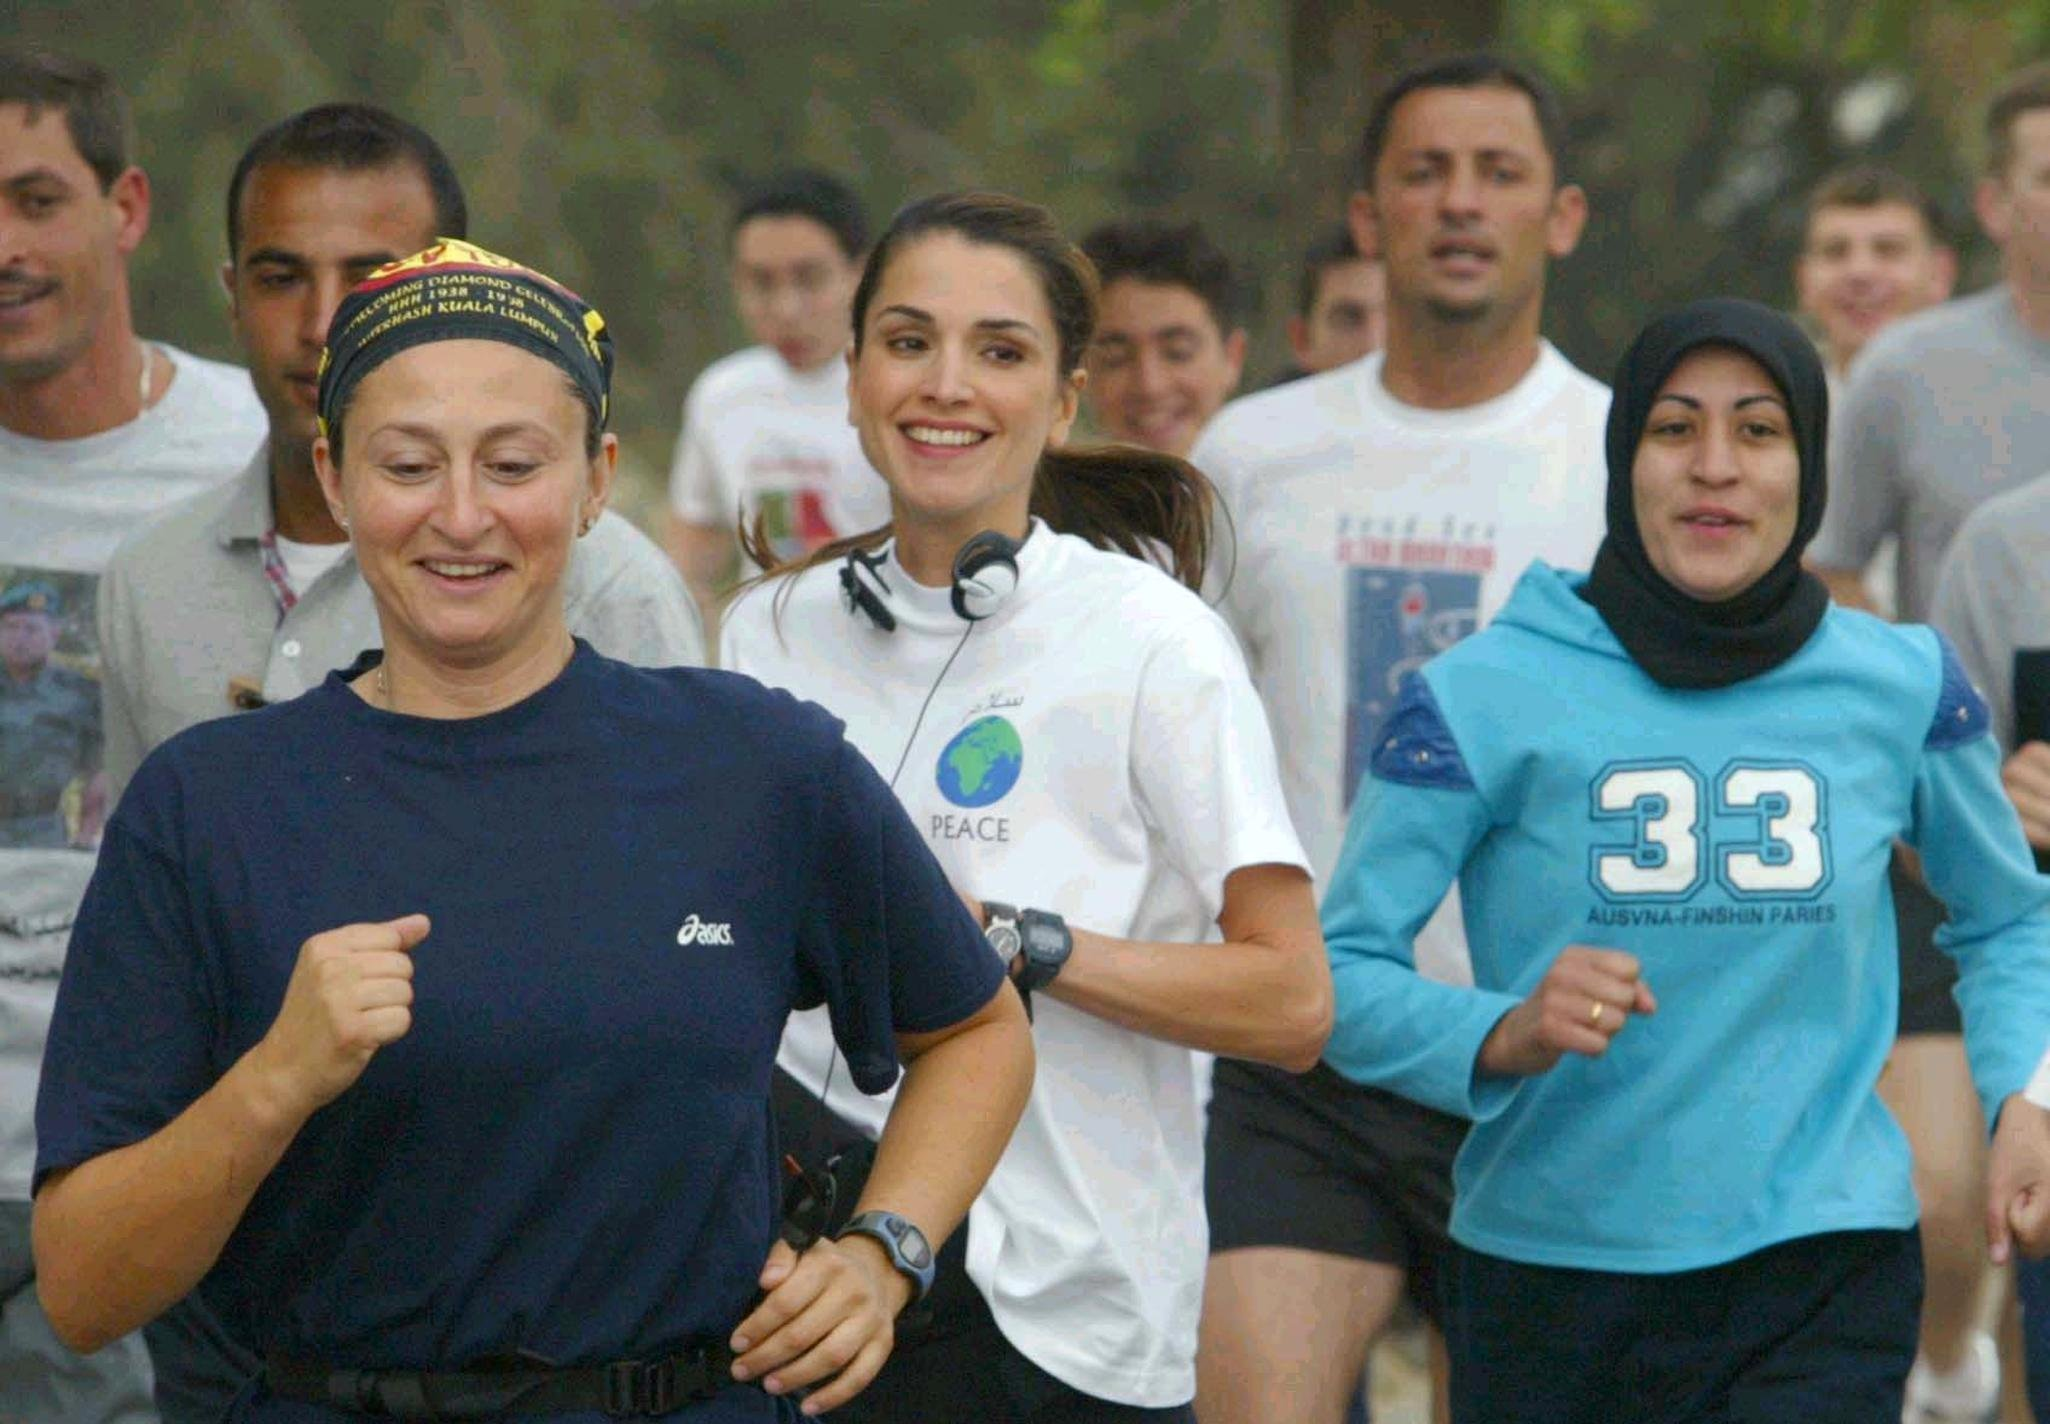 Queen Rania of Jordan (C) takes part in a charity race in Amman 30 May 2003. The proceeds of the 10-kilometer race will go to the needy in the kingdom